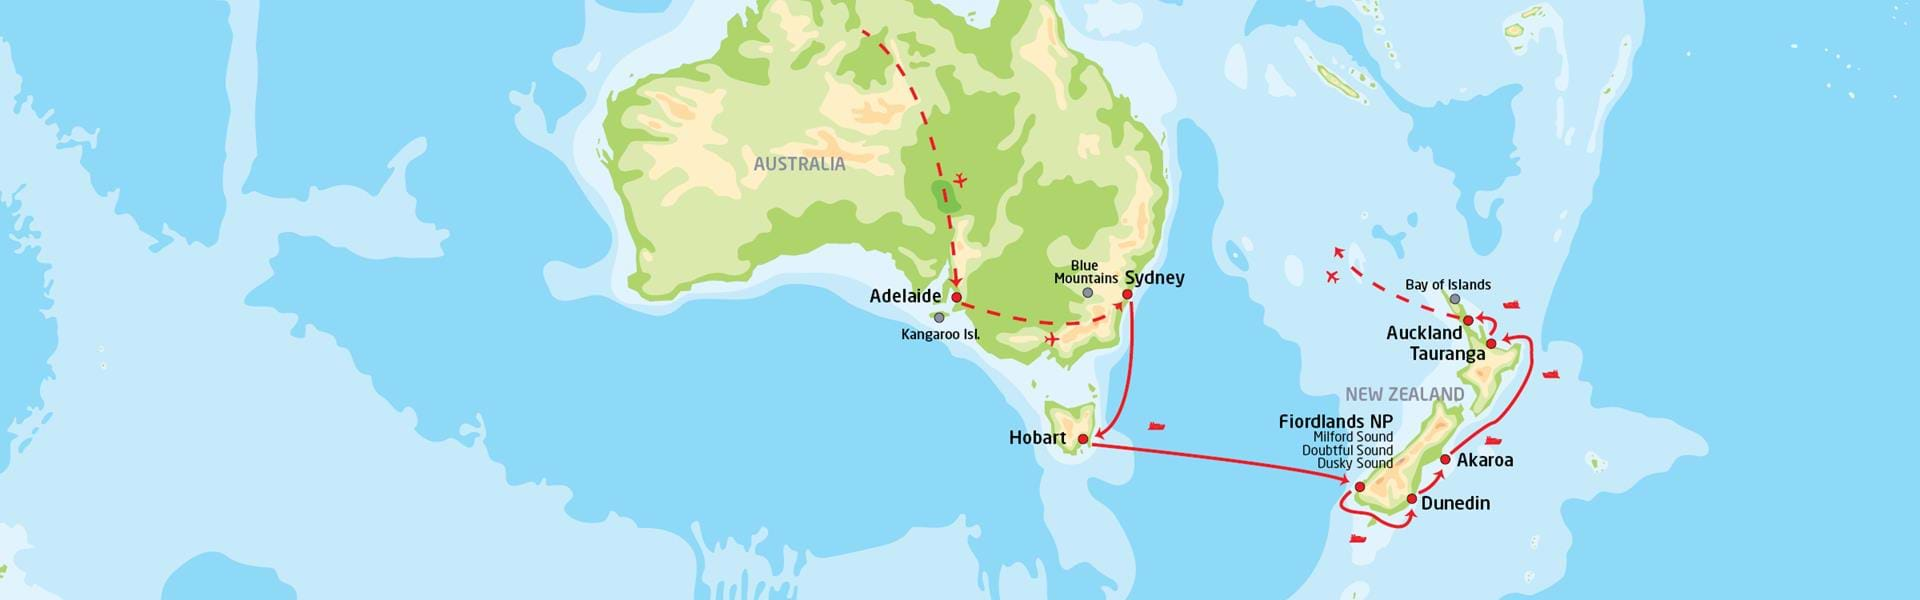 Adelaide og cruise til New Zealand | Reiserute